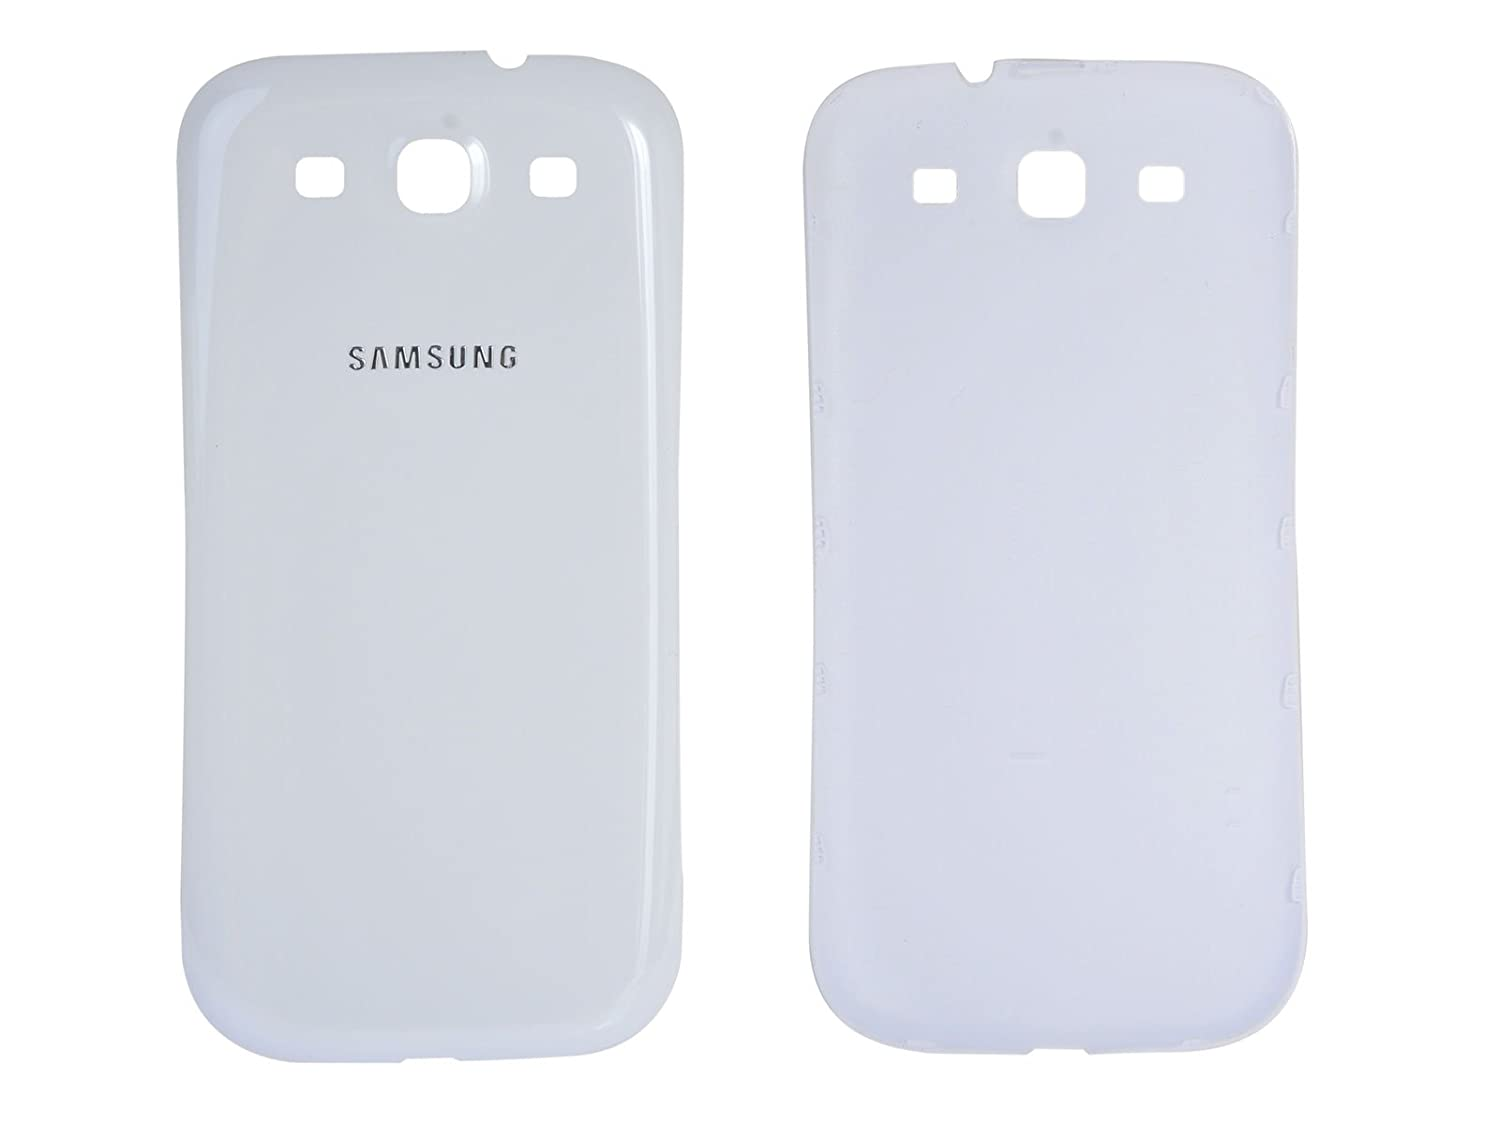 samsung phone back. amazon.com: samsung original back cover for galaxy s3 gt-i9300 - white: cell phones \u0026 accessories phone :